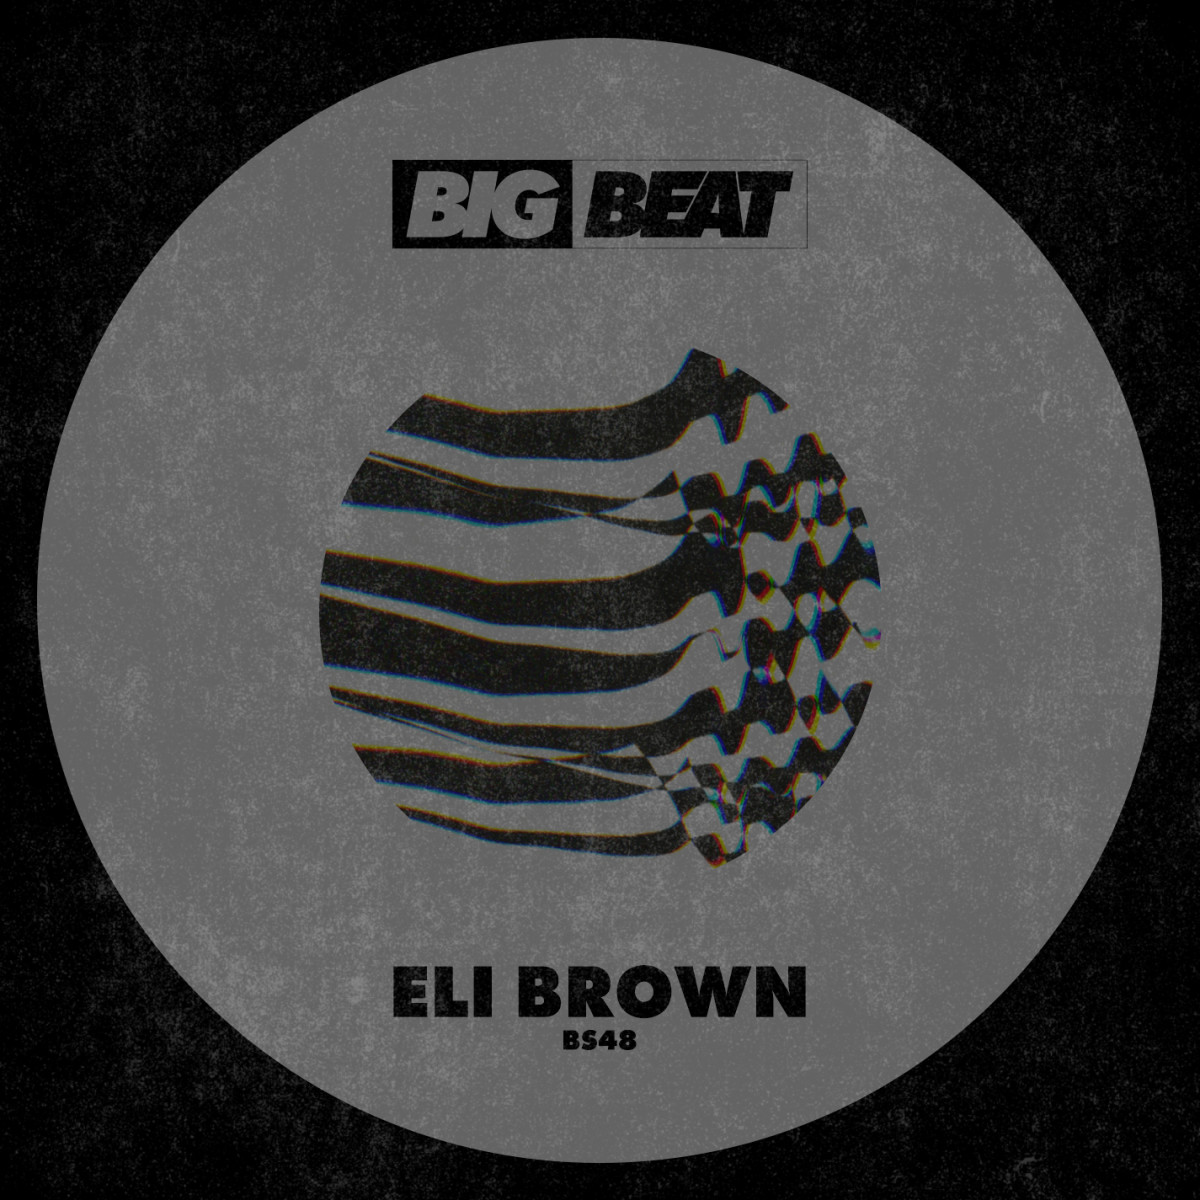 Eli Brown - BS48 (ALBUM ART)